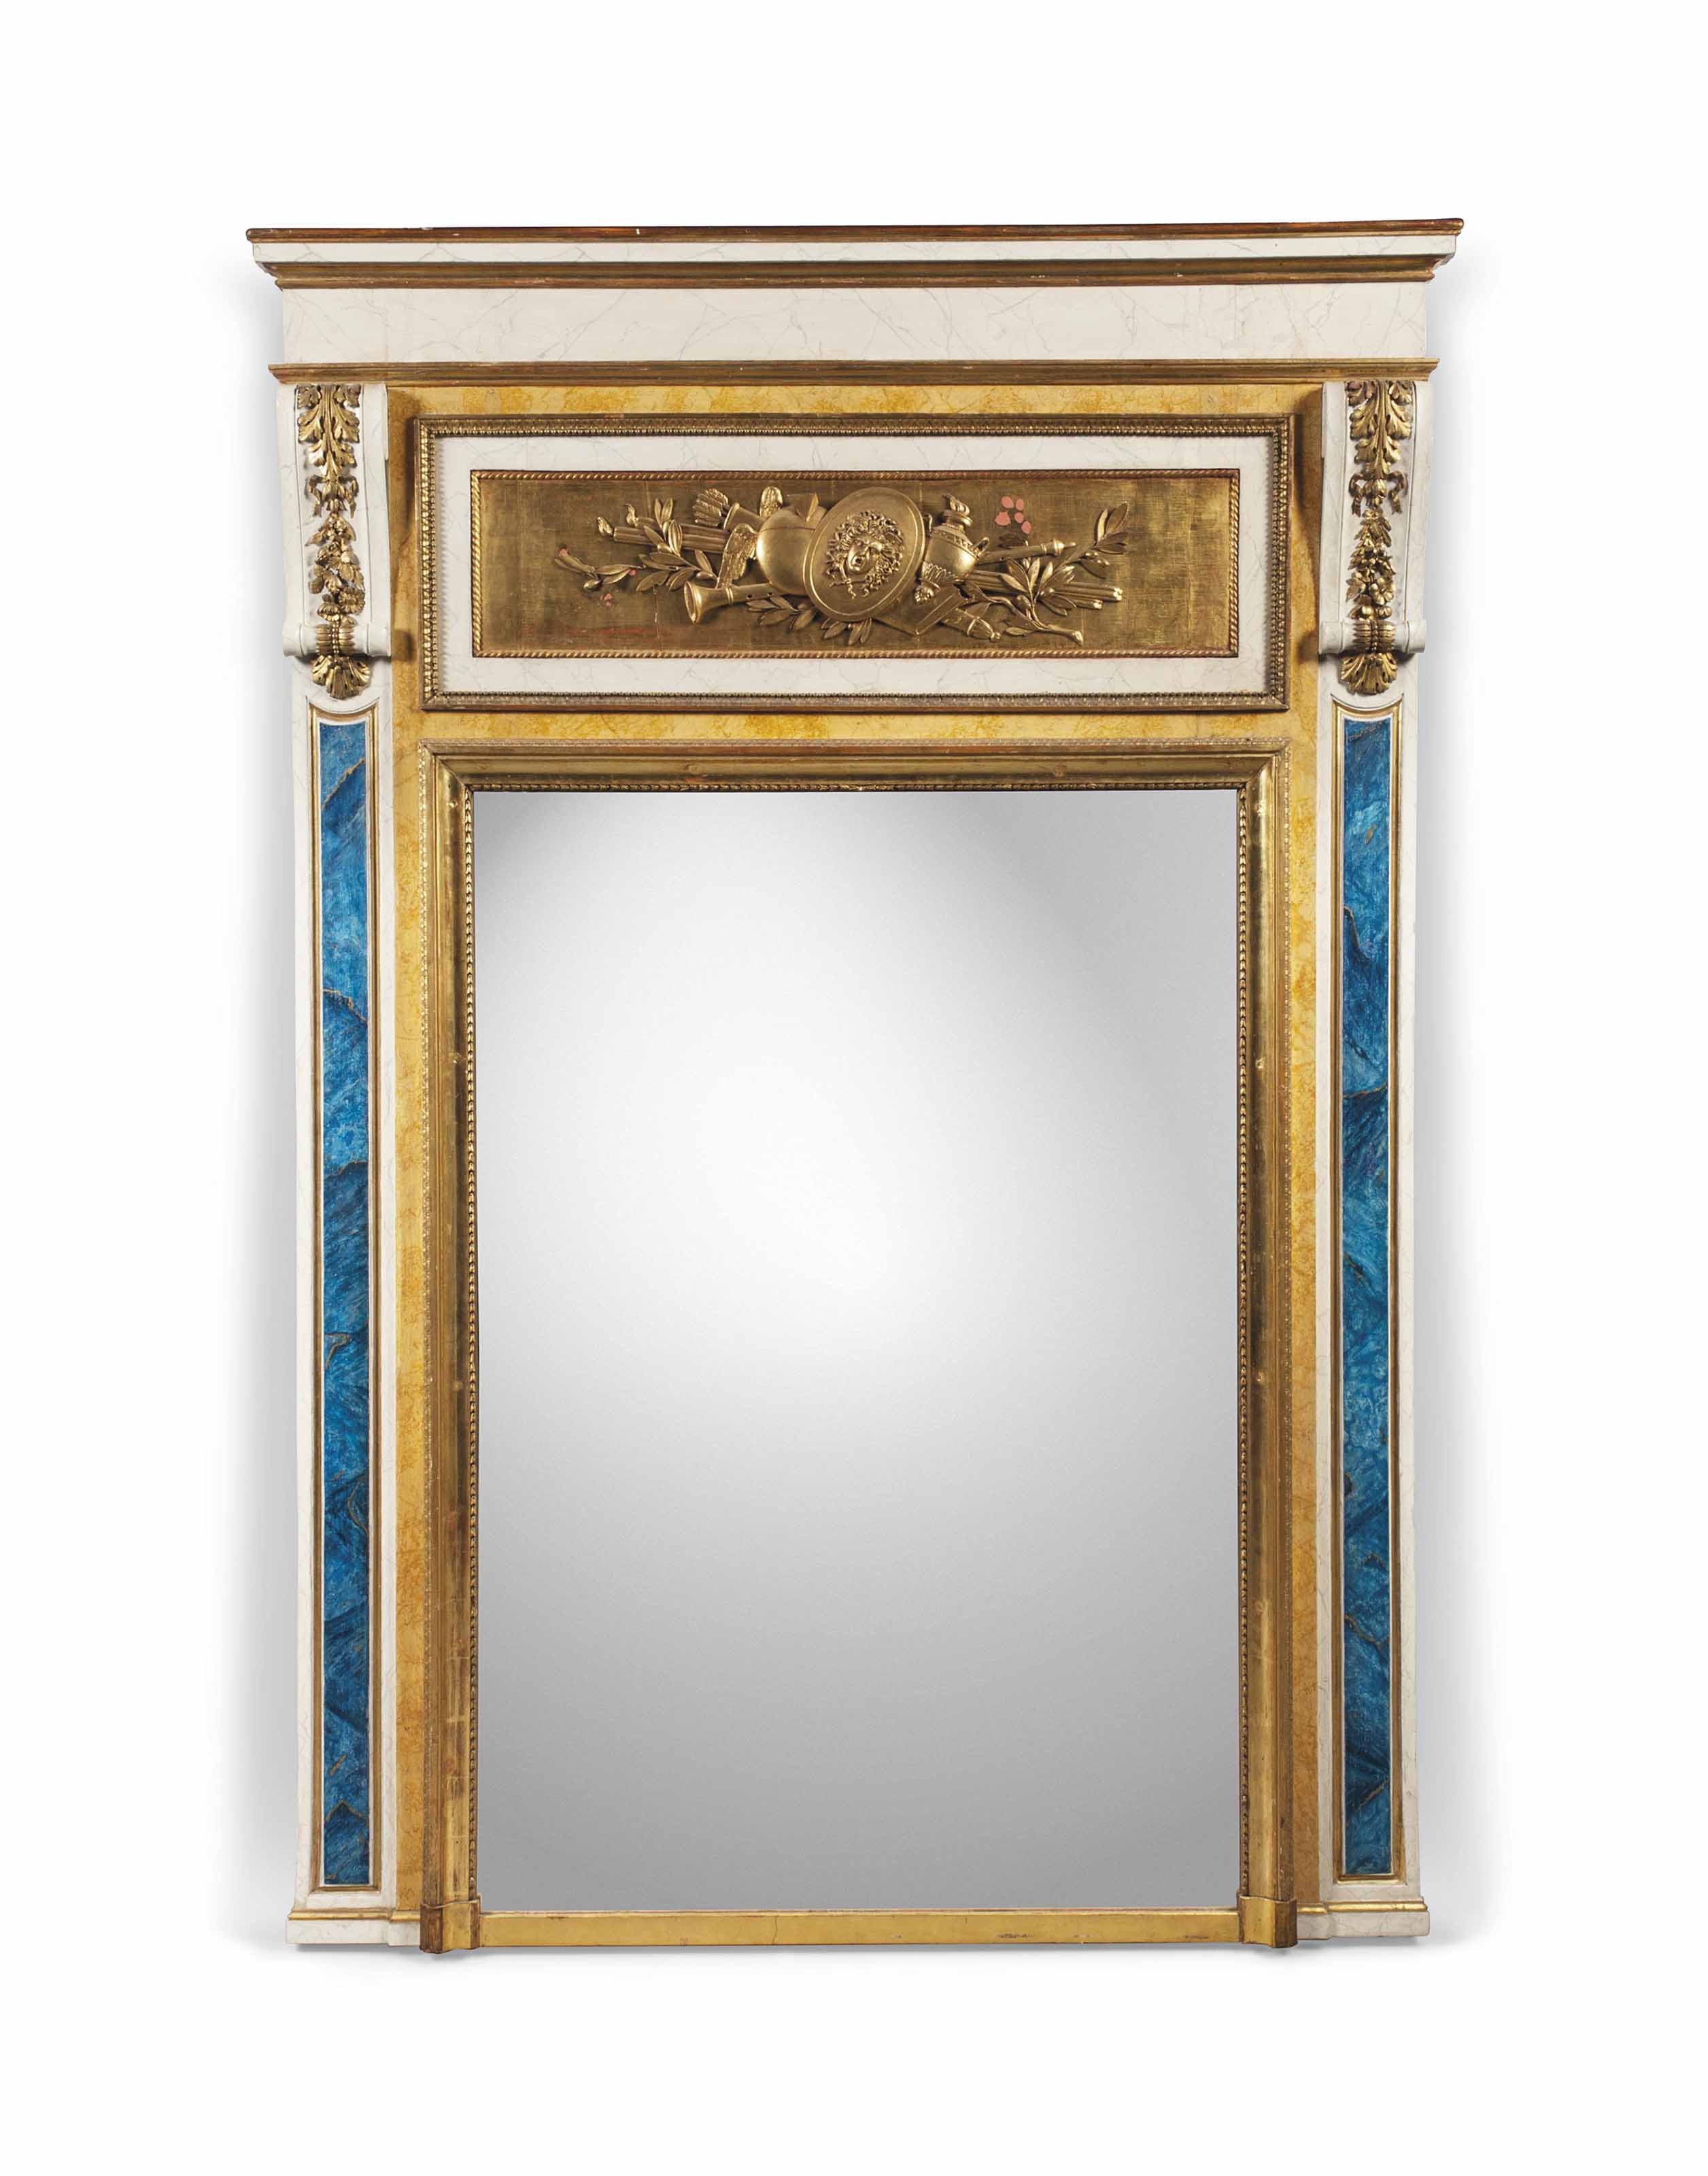 A LARGE FRENCH GILTWOOD AND SI